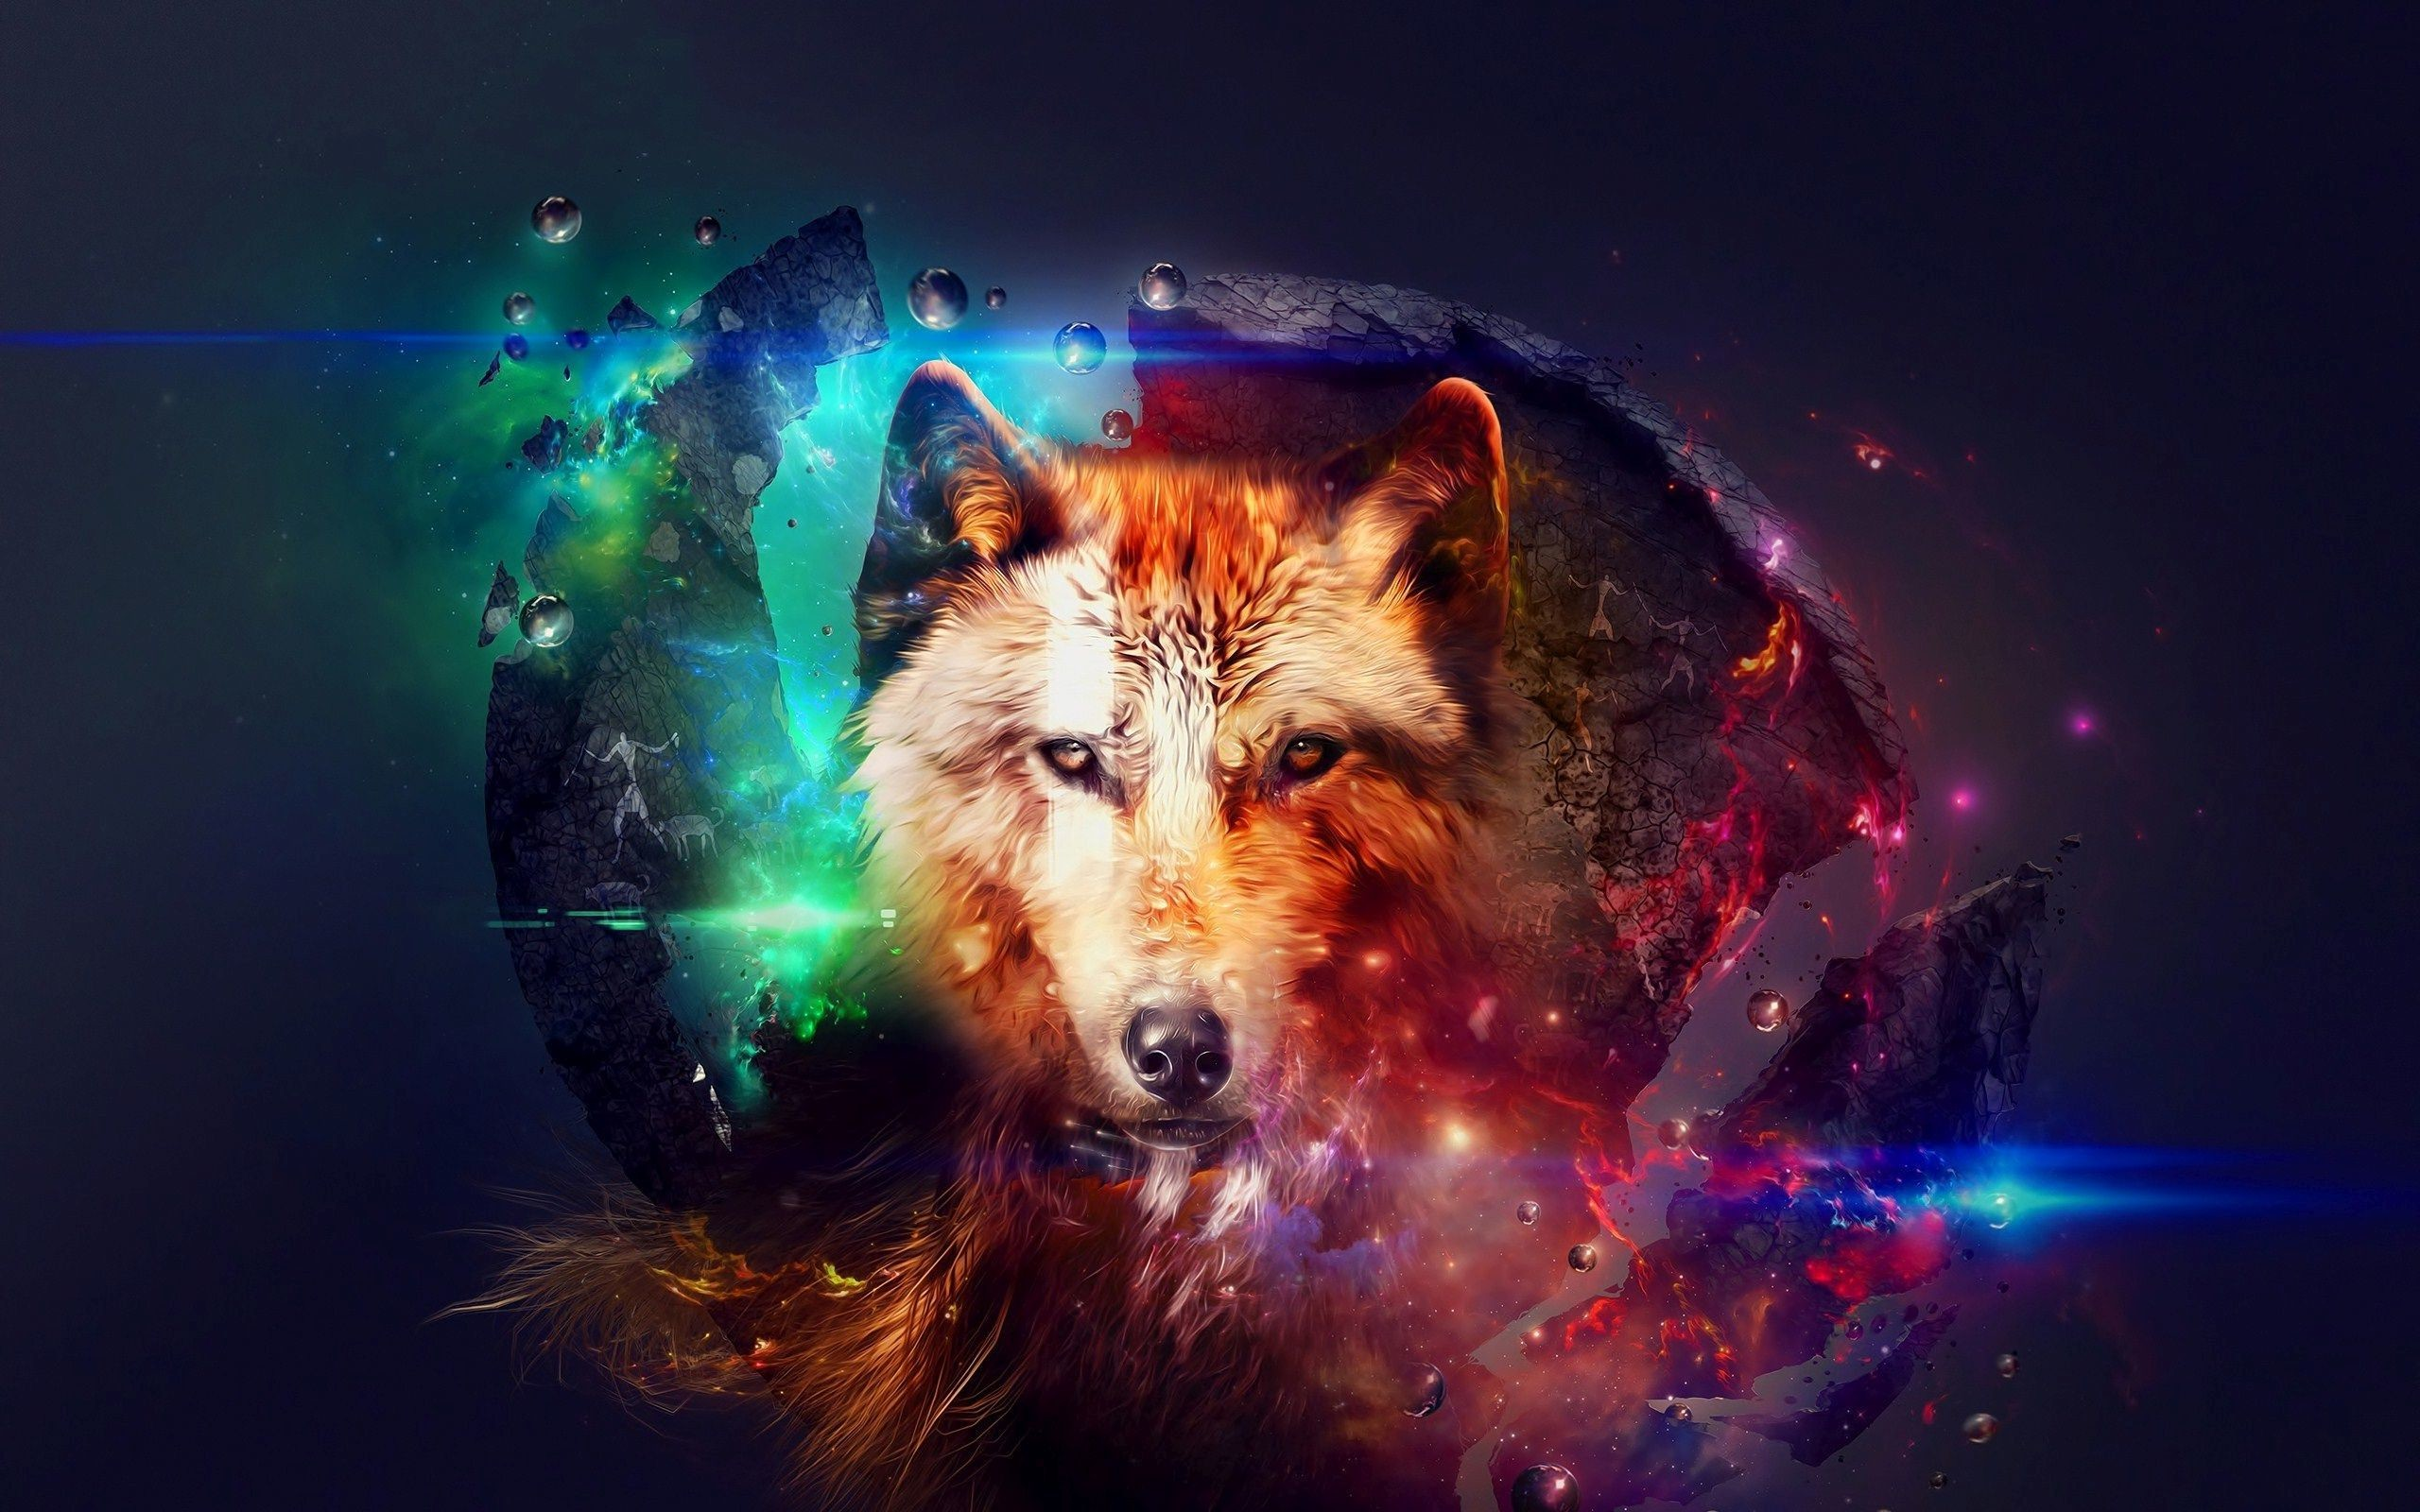 Magical Fantasy Hd Wallpapers That Will Take Your Breathe: Galaxy Wolf Wallpaper (69+ Images